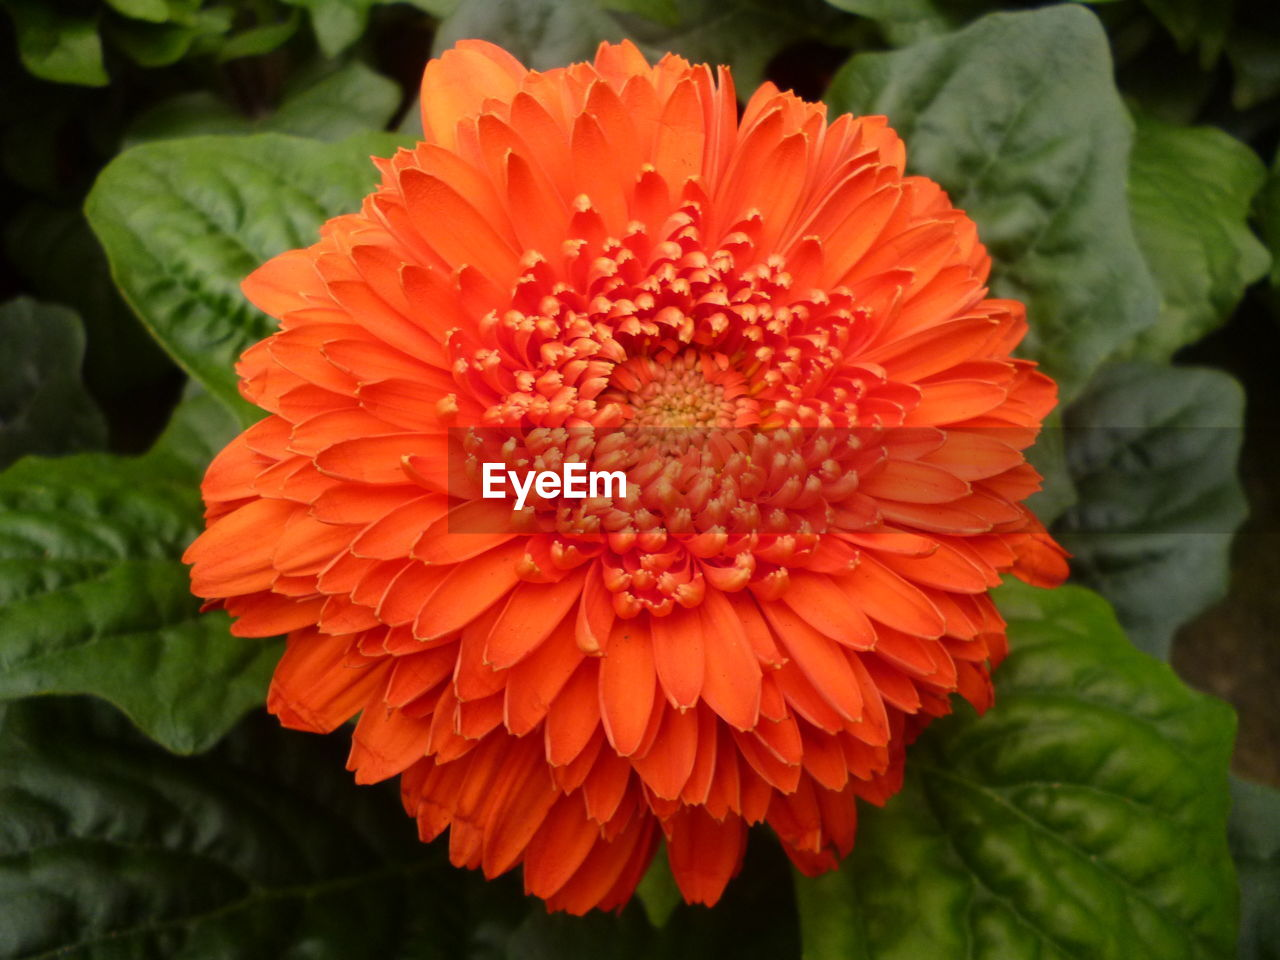 flower, petal, beauty in nature, flower head, fragility, freshness, nature, orange color, growth, no people, close-up, blooming, plant, day, leaf, outdoors, red, zinnia